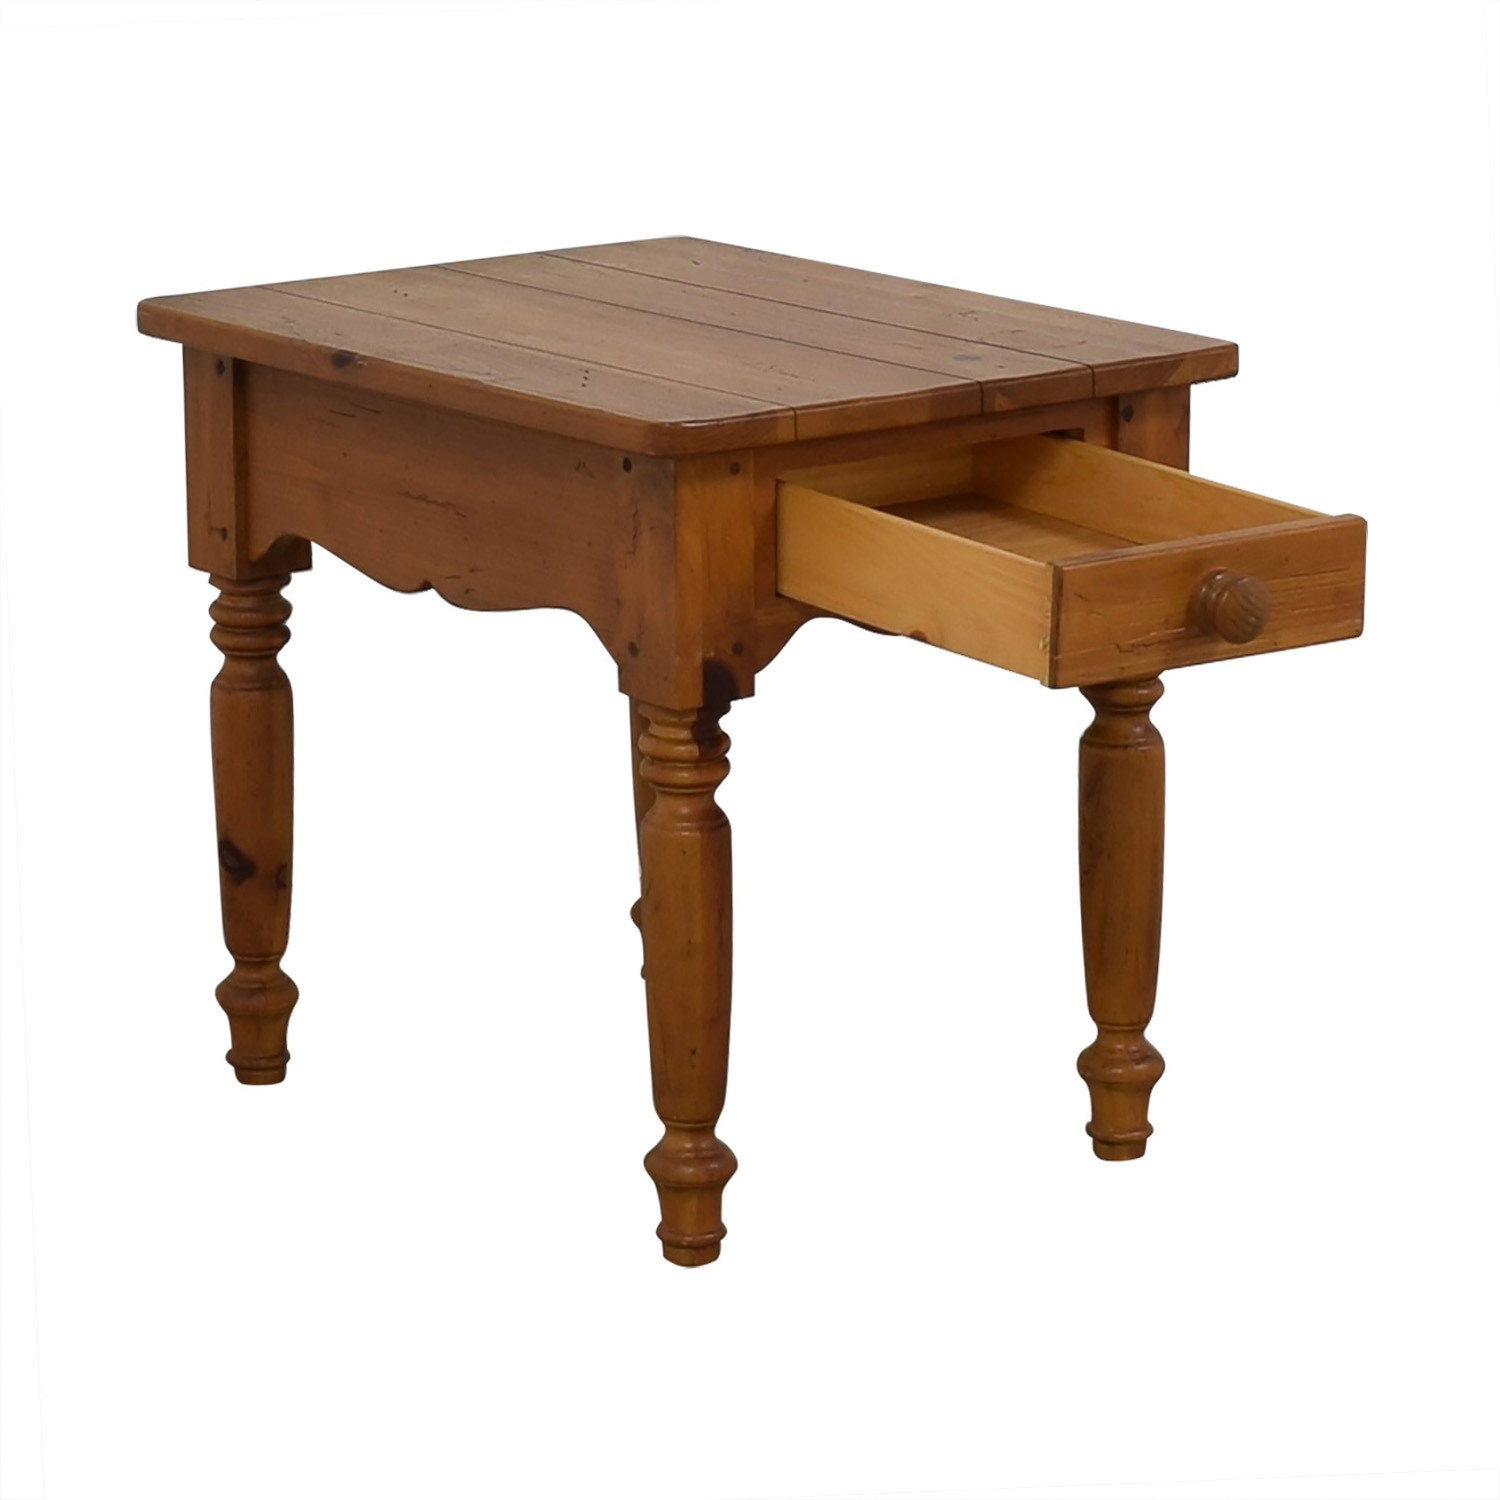 Ethan Allen Ethan Allen Dovetailed Single Drawer End Table discount